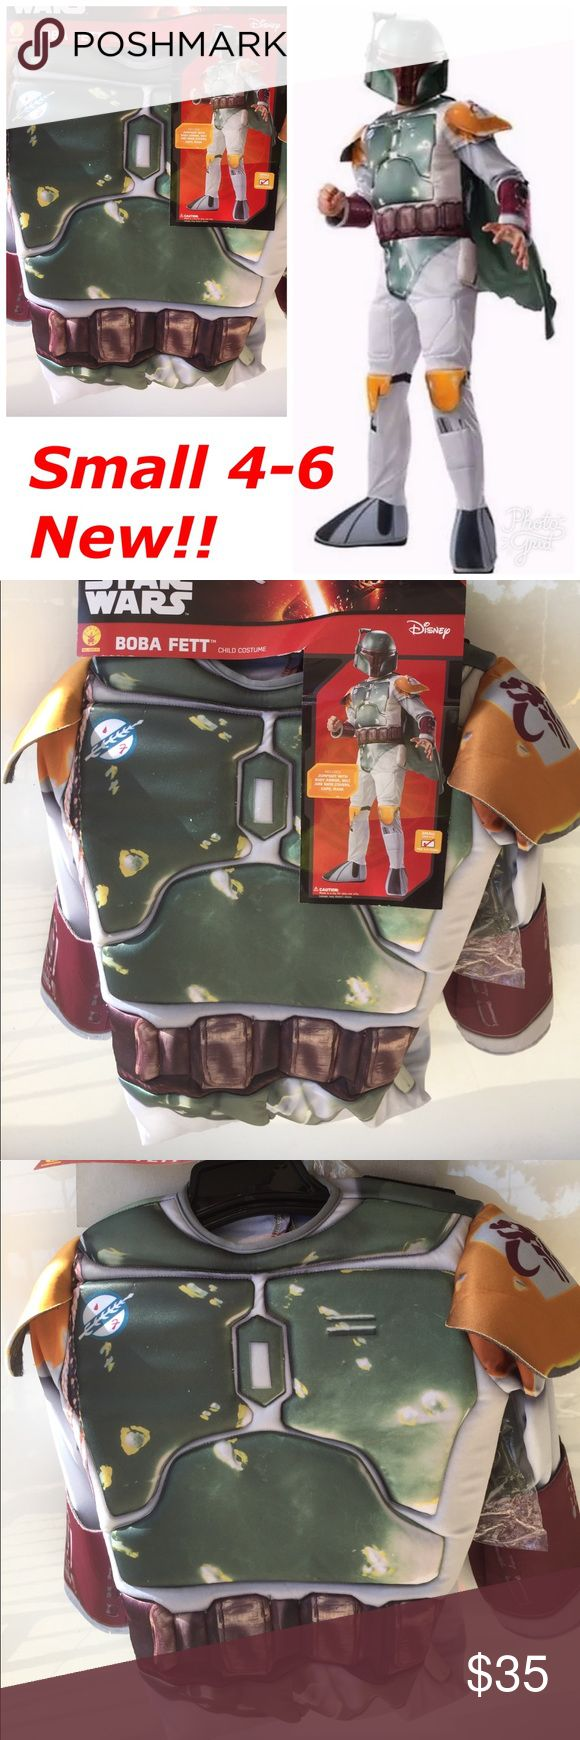 Boba Fett Star Wars Boys Halloween Costume Small Includes: -Jumpsuit with body armor and shoe covers & belt  -Mask -Cape   Size Small 4-6   Item is brand new! Costumes Halloween